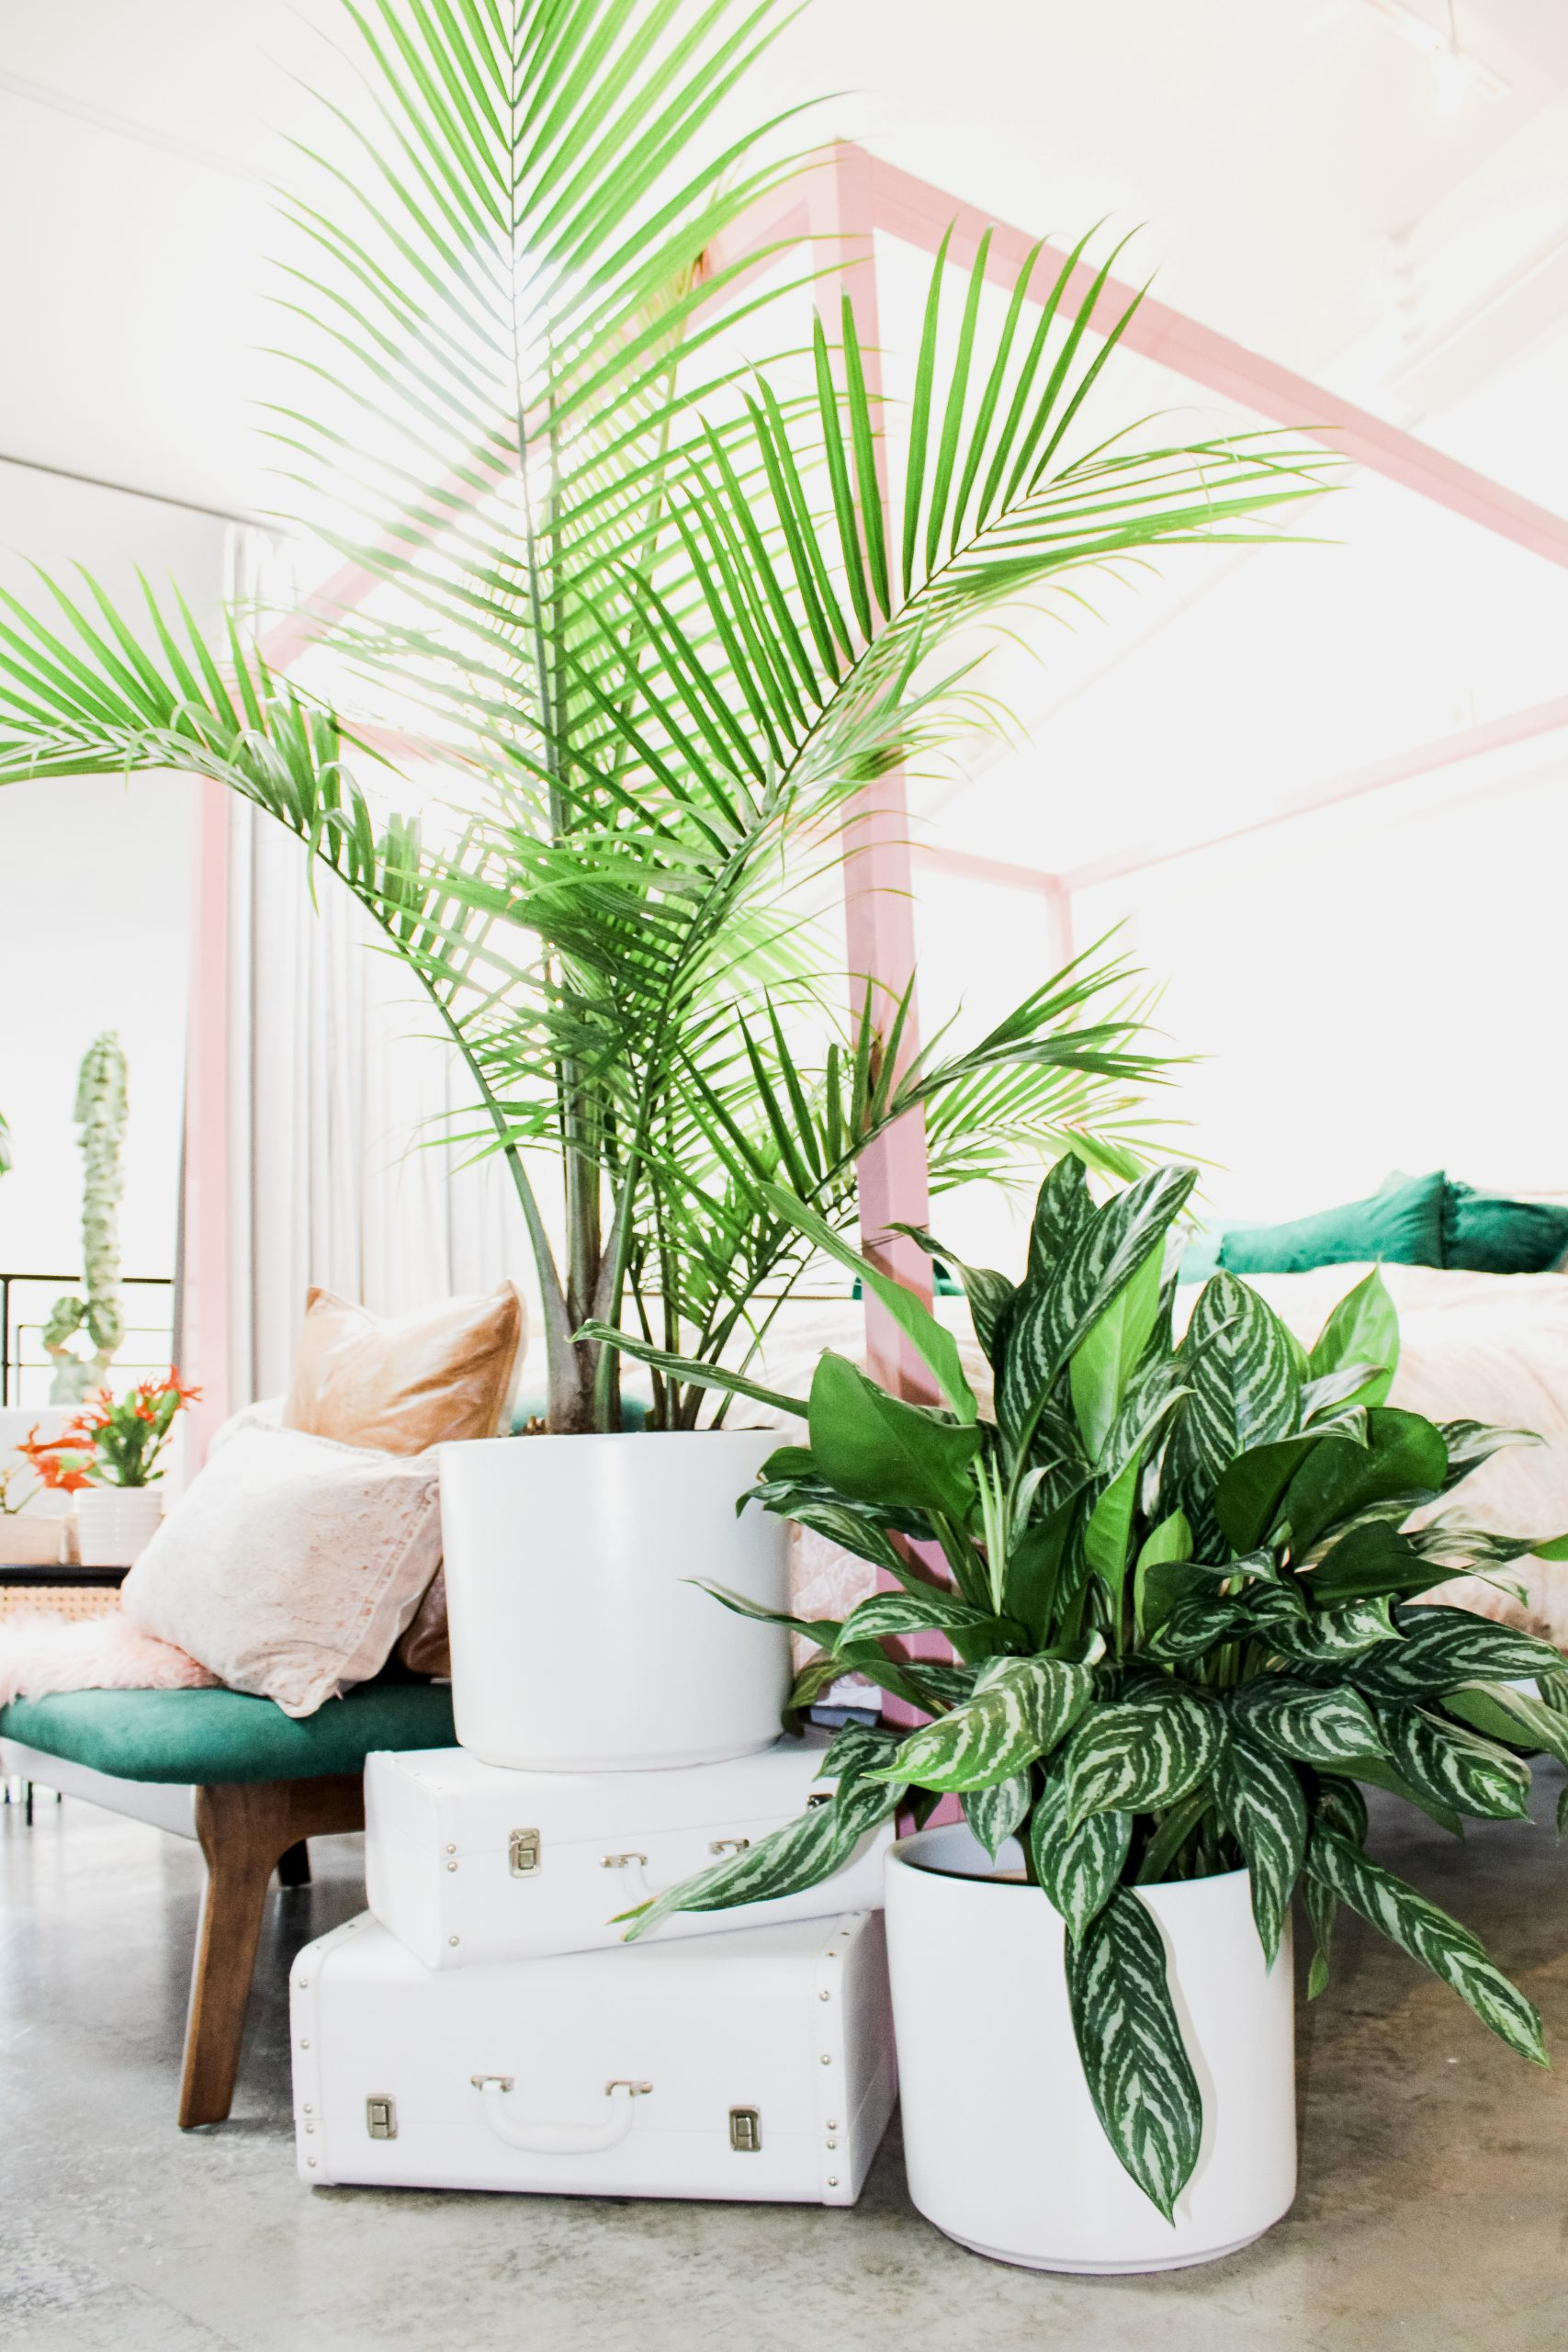 A vignette in The Plant Penthouse